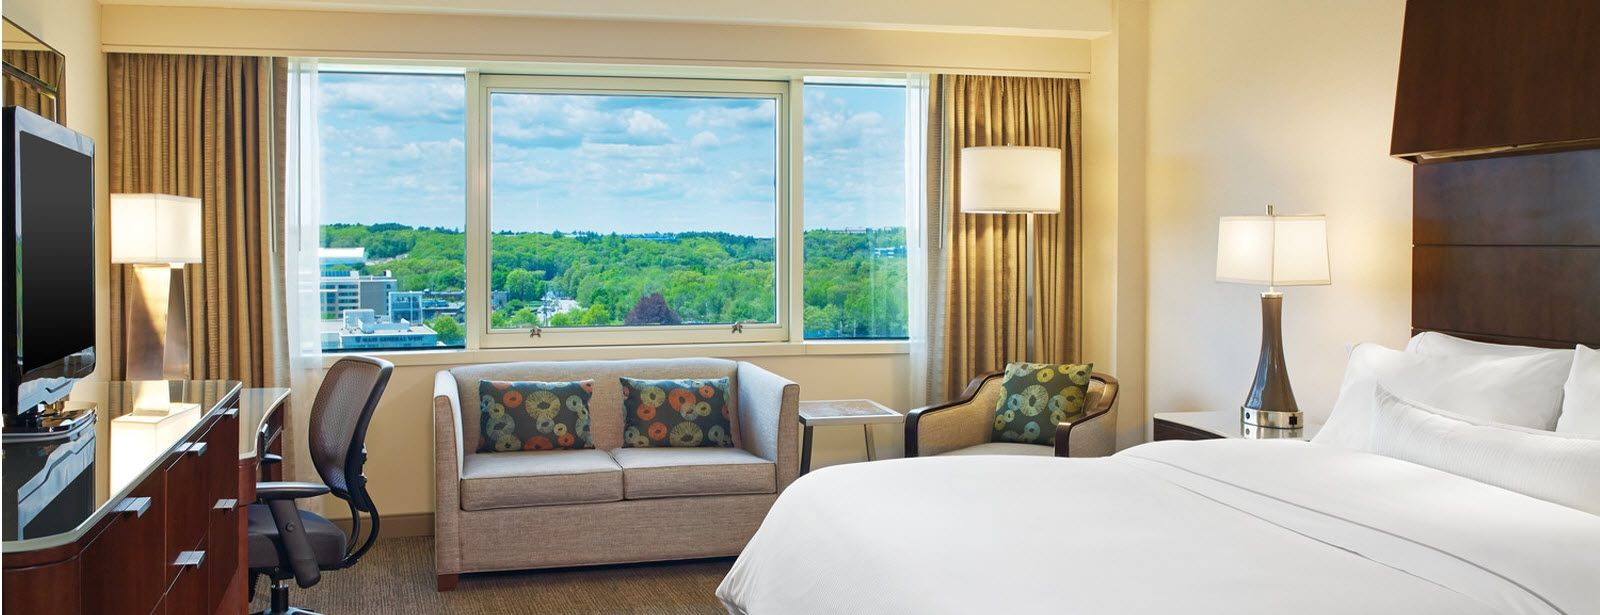 The Westin Waltham Boston reservoir guest room